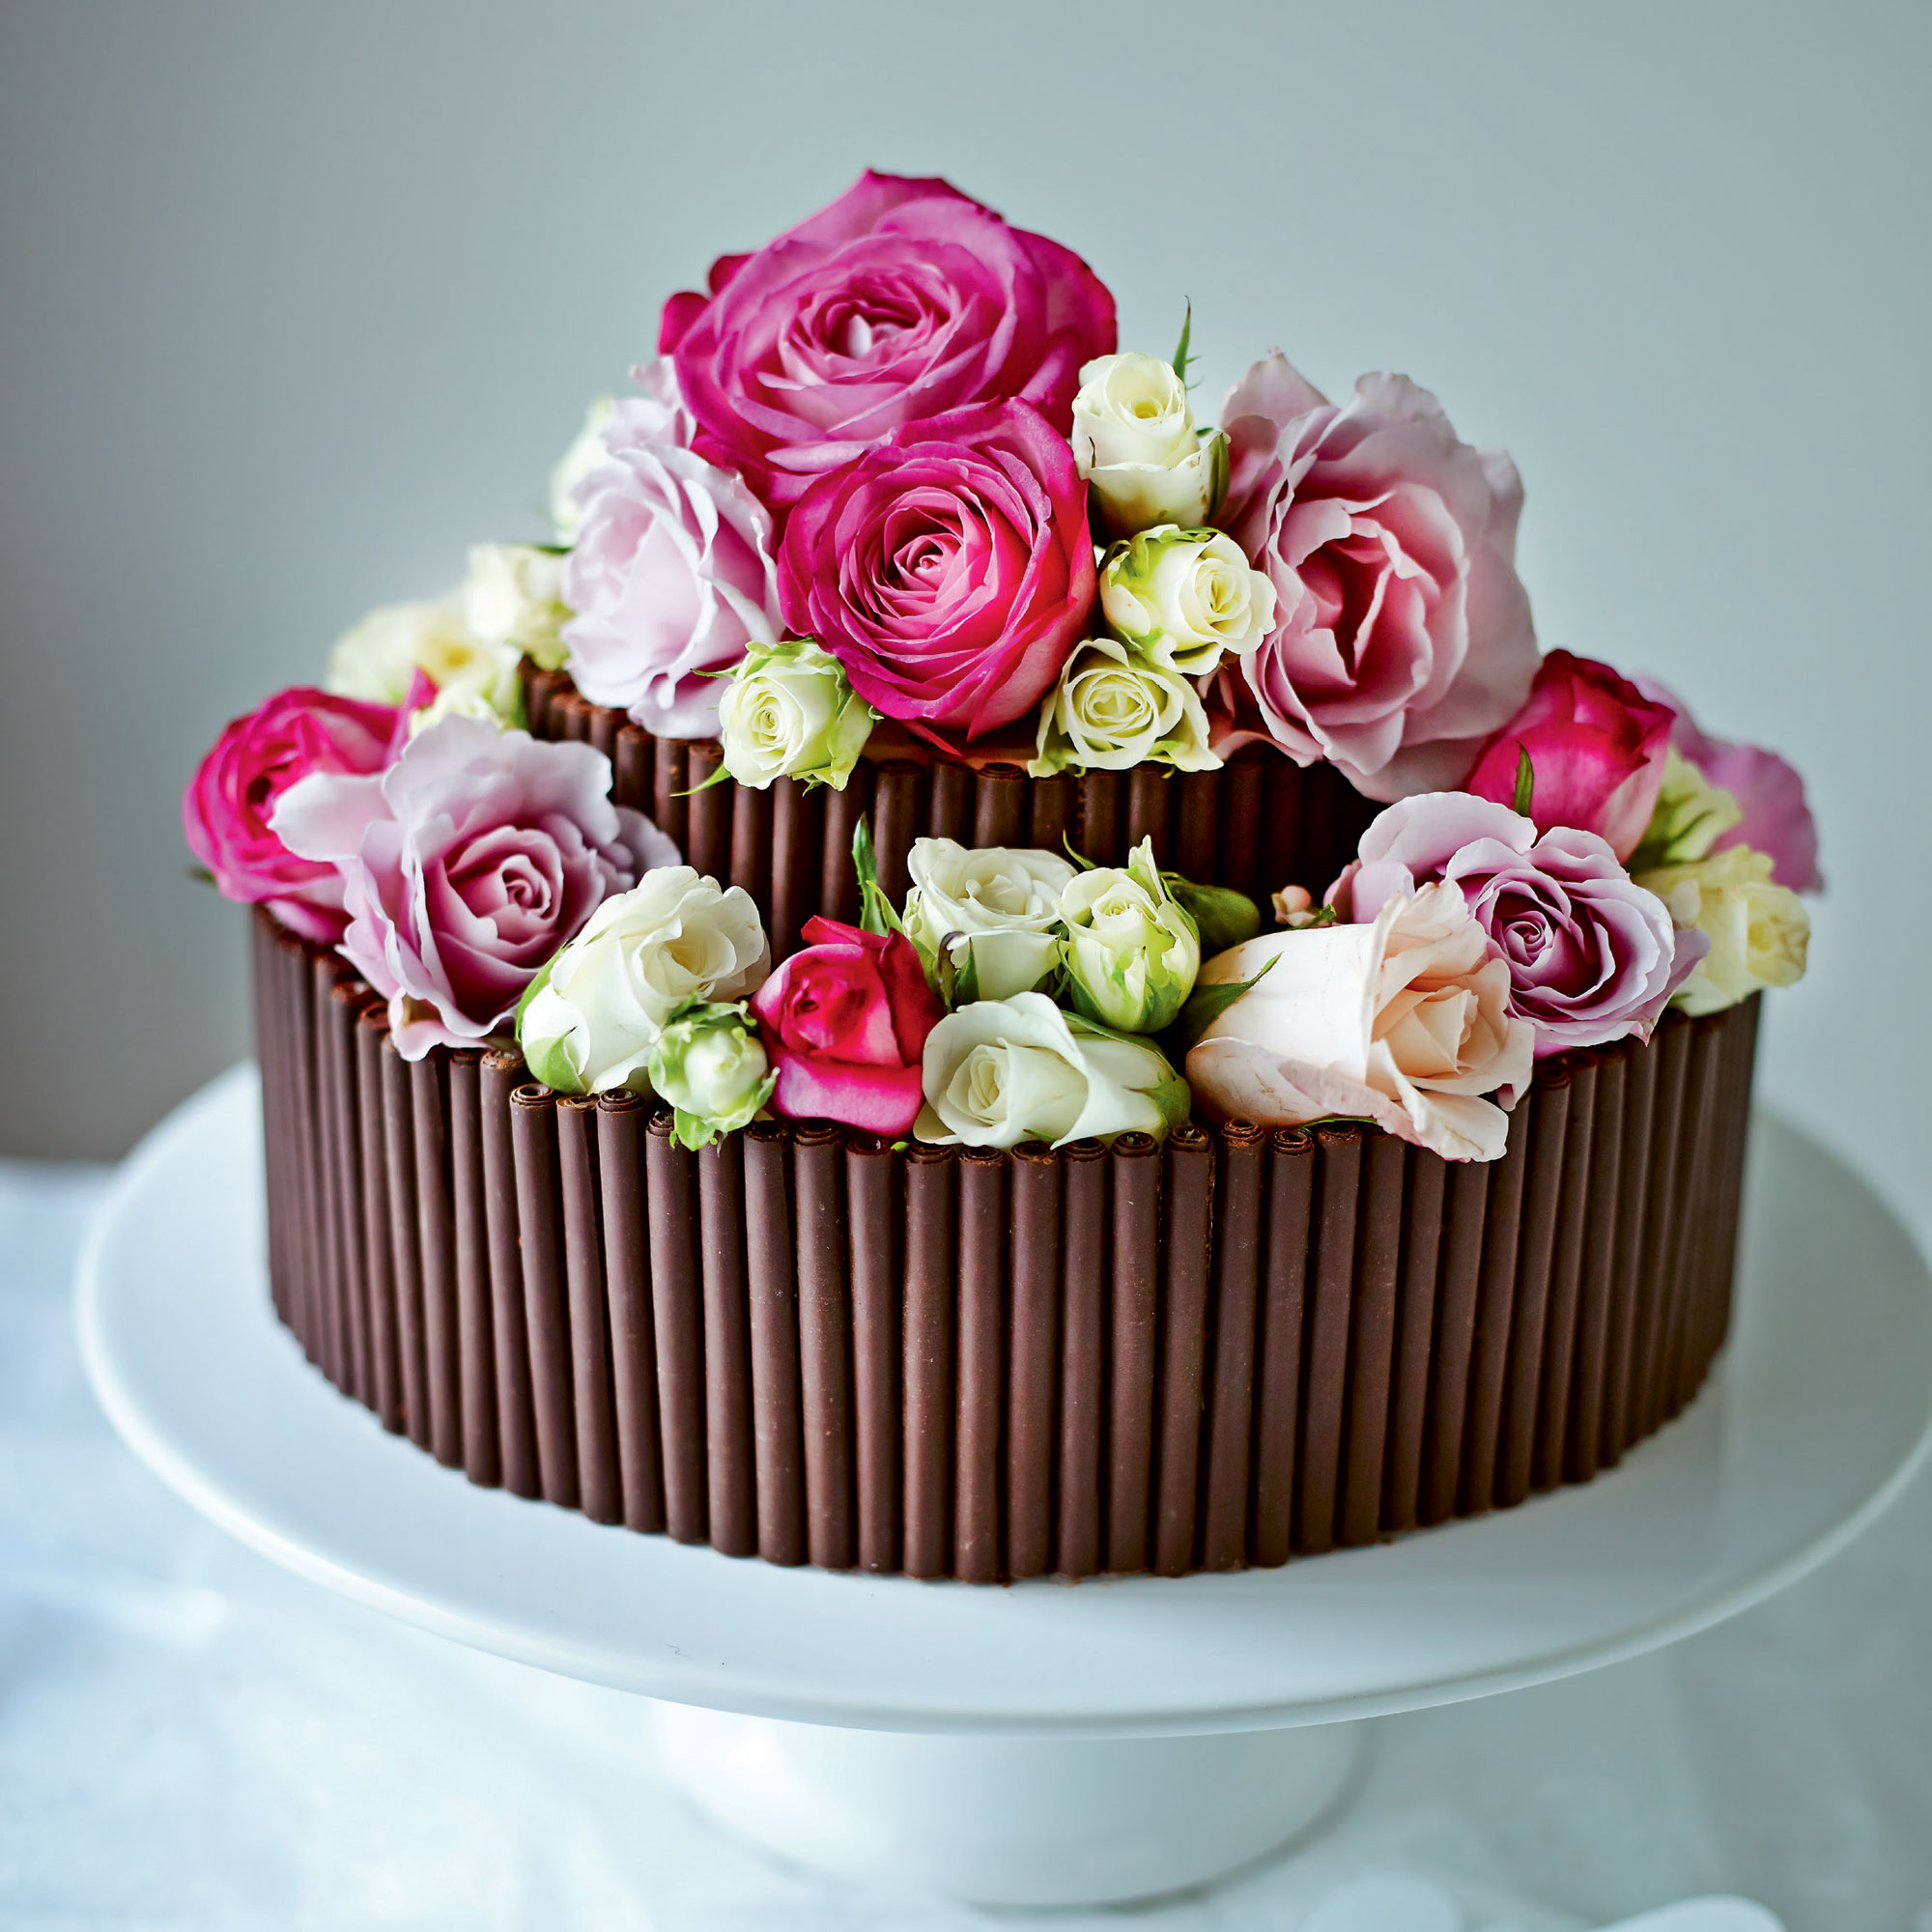 Jo Wheatley s Rose and Chocolate Wedding Cake Woman And Home